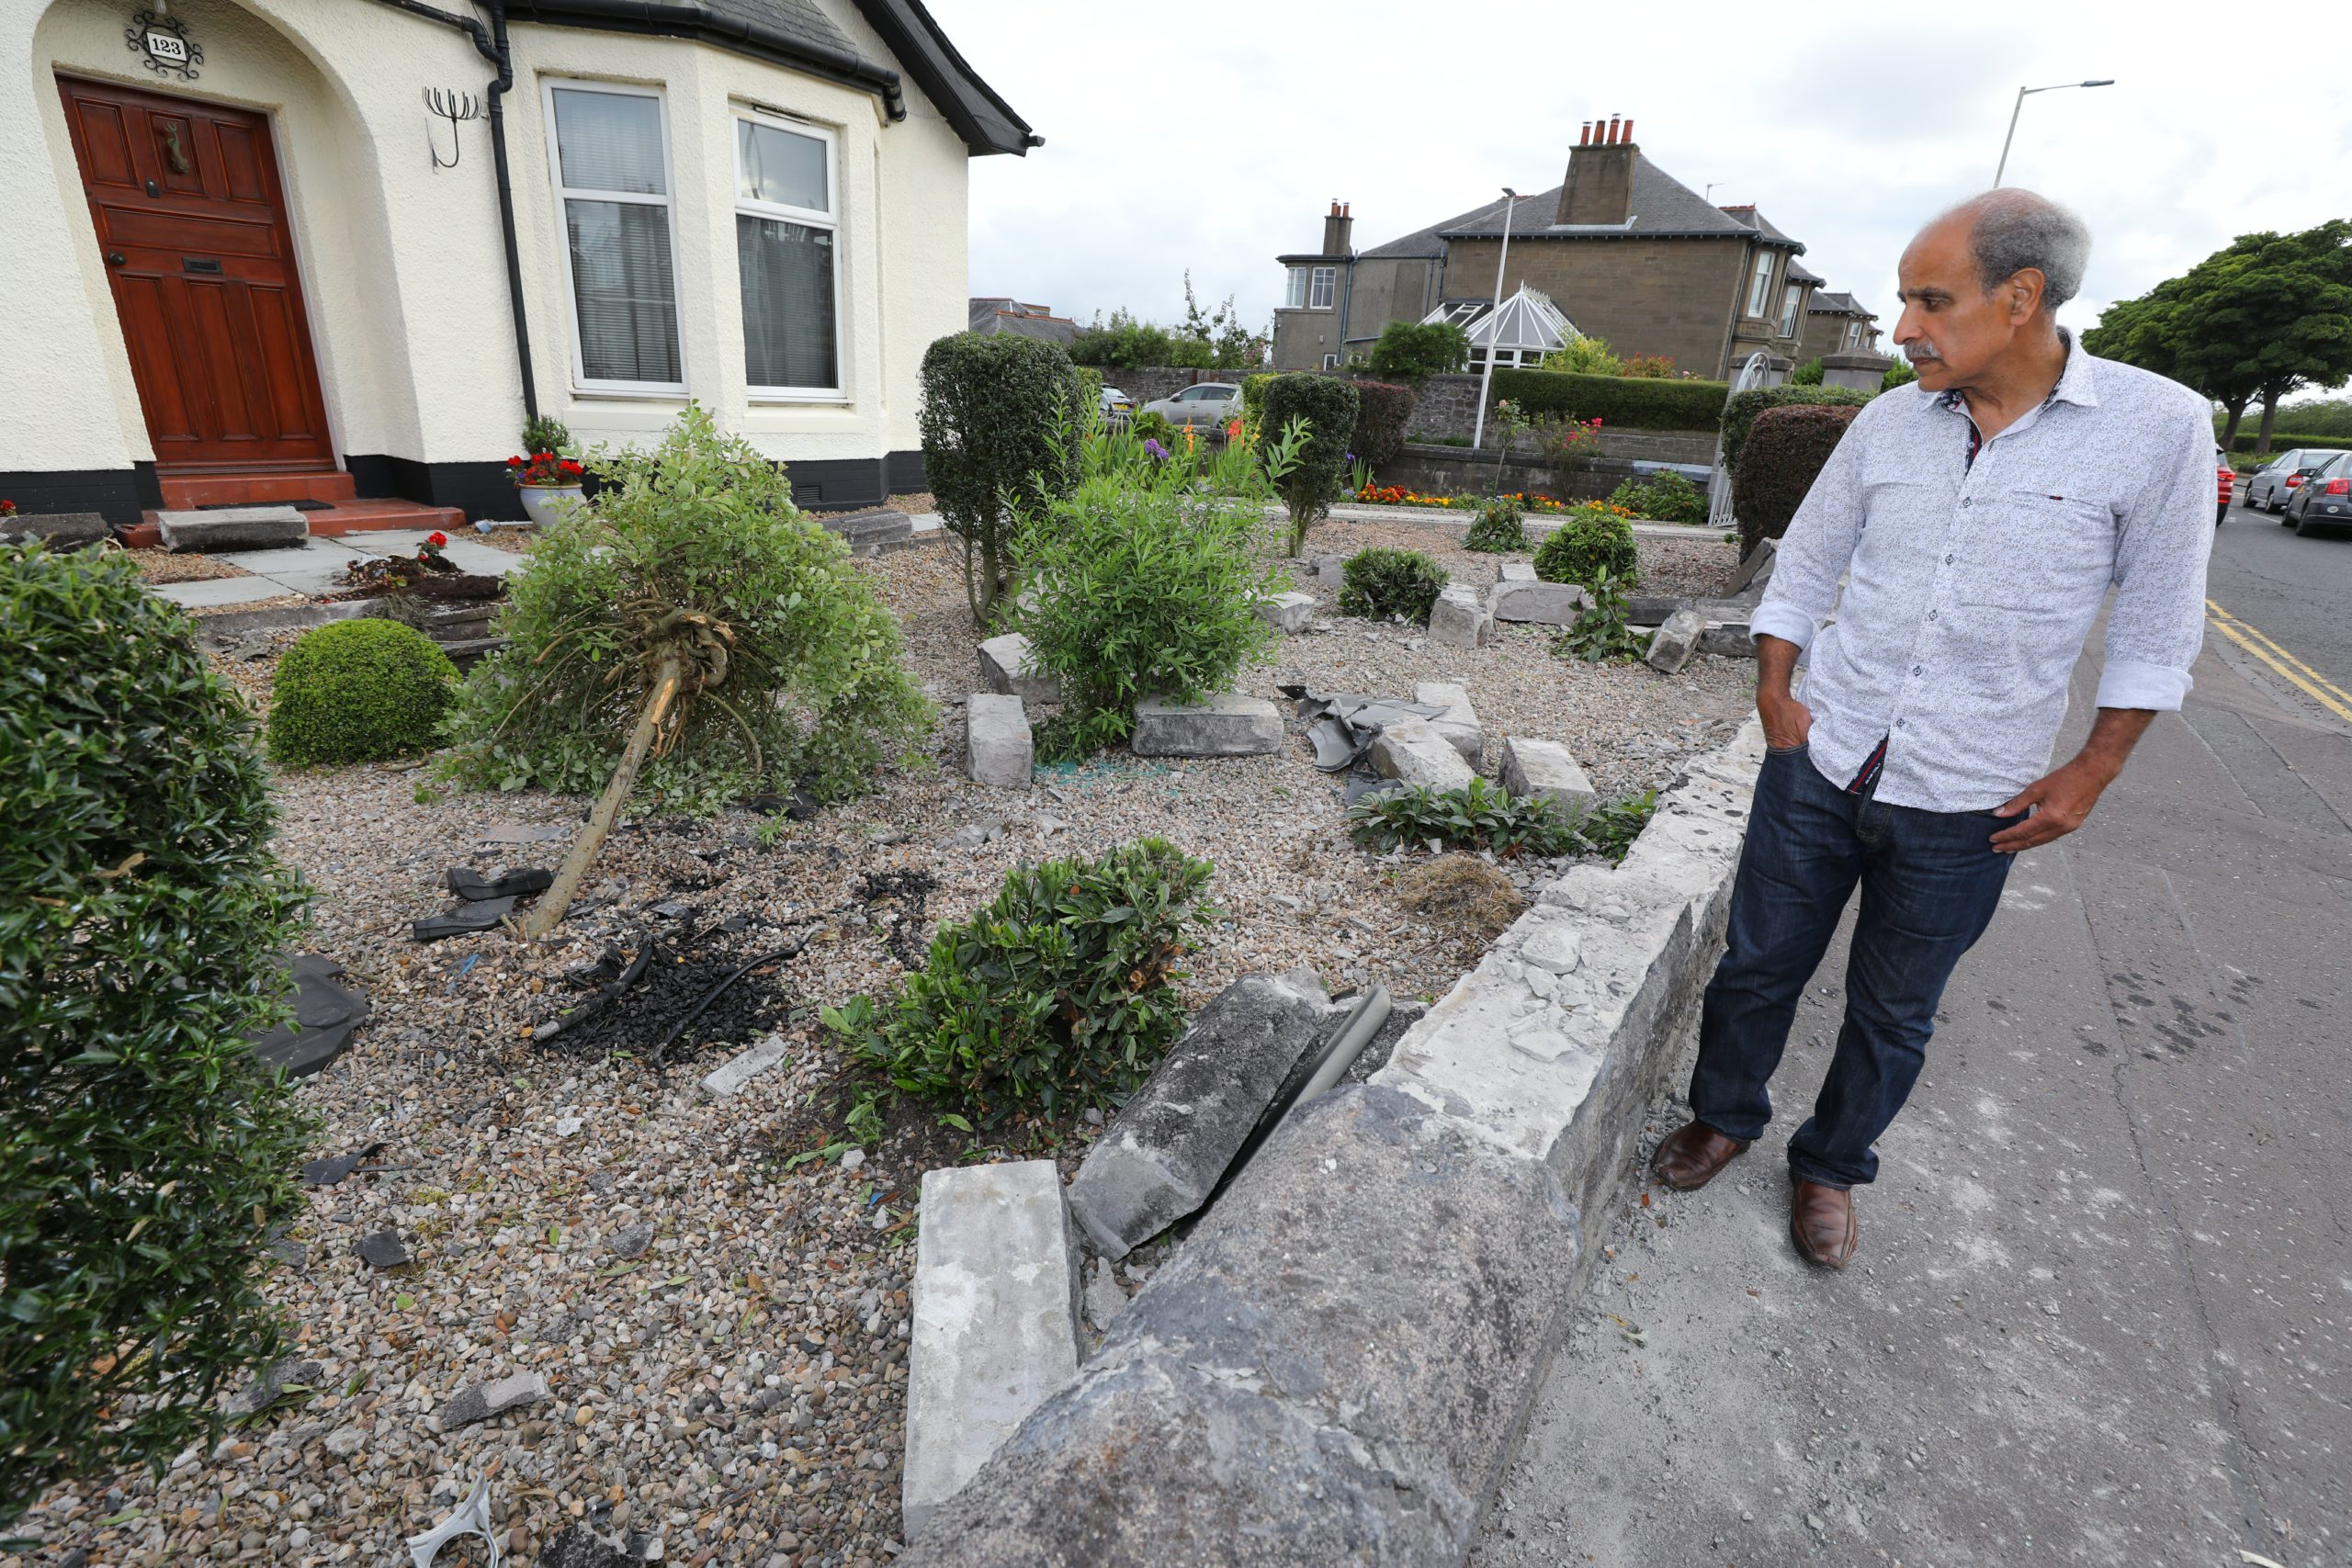 Amgad Taha looking at the damage to the wall of his property on Pitkerro Road.